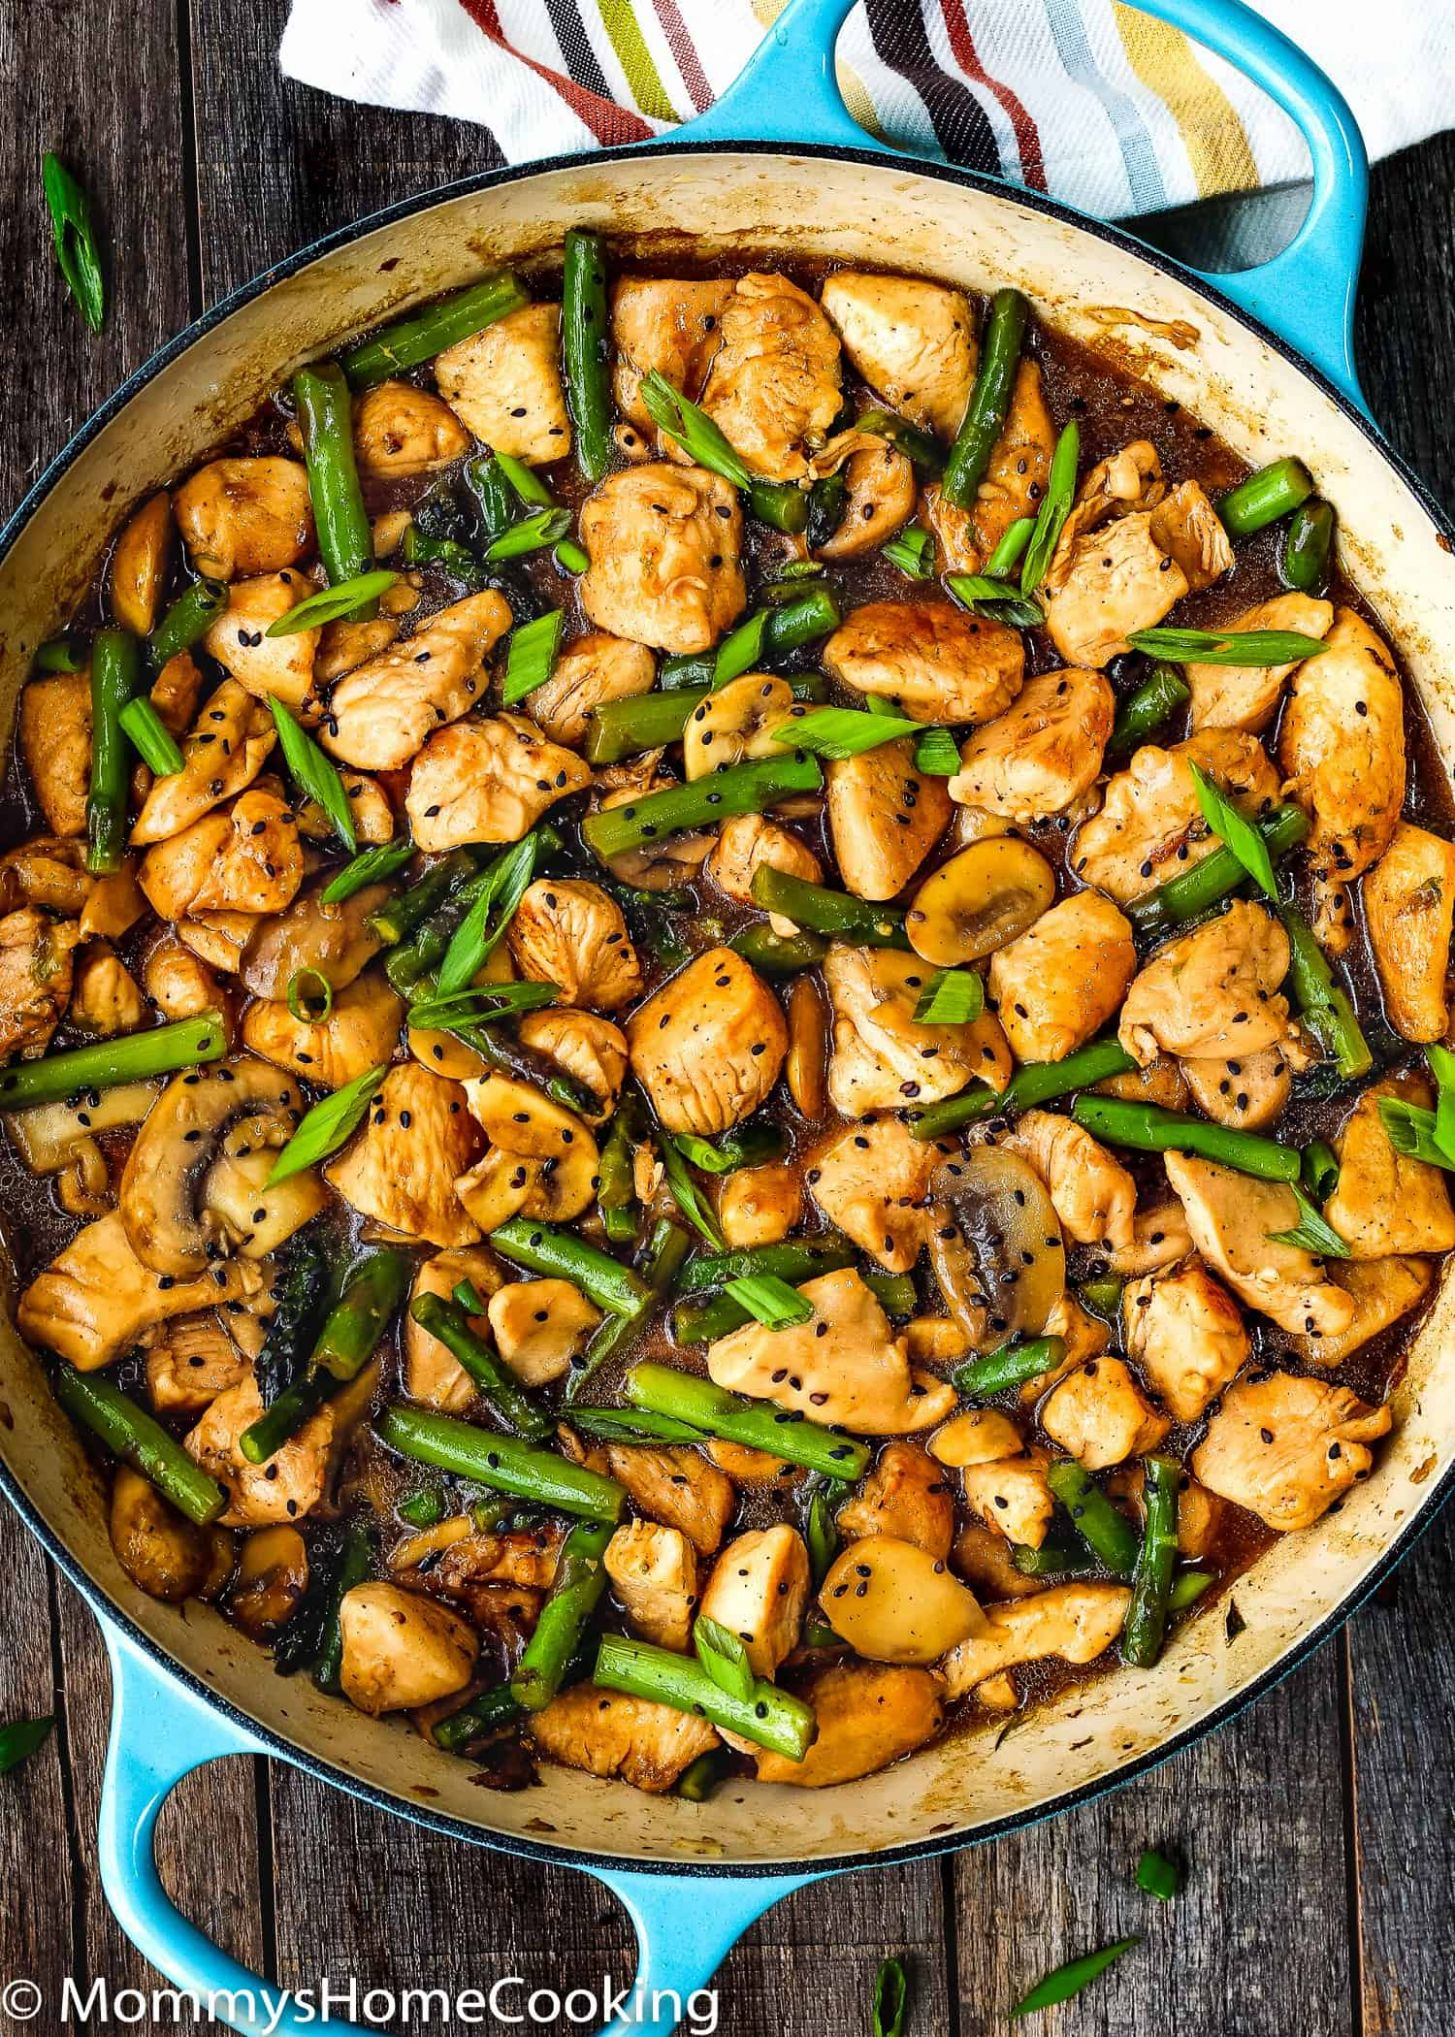 Easy Healthy Chicken and Asparagus Skillet - Easy Recipes Dinner Healthy